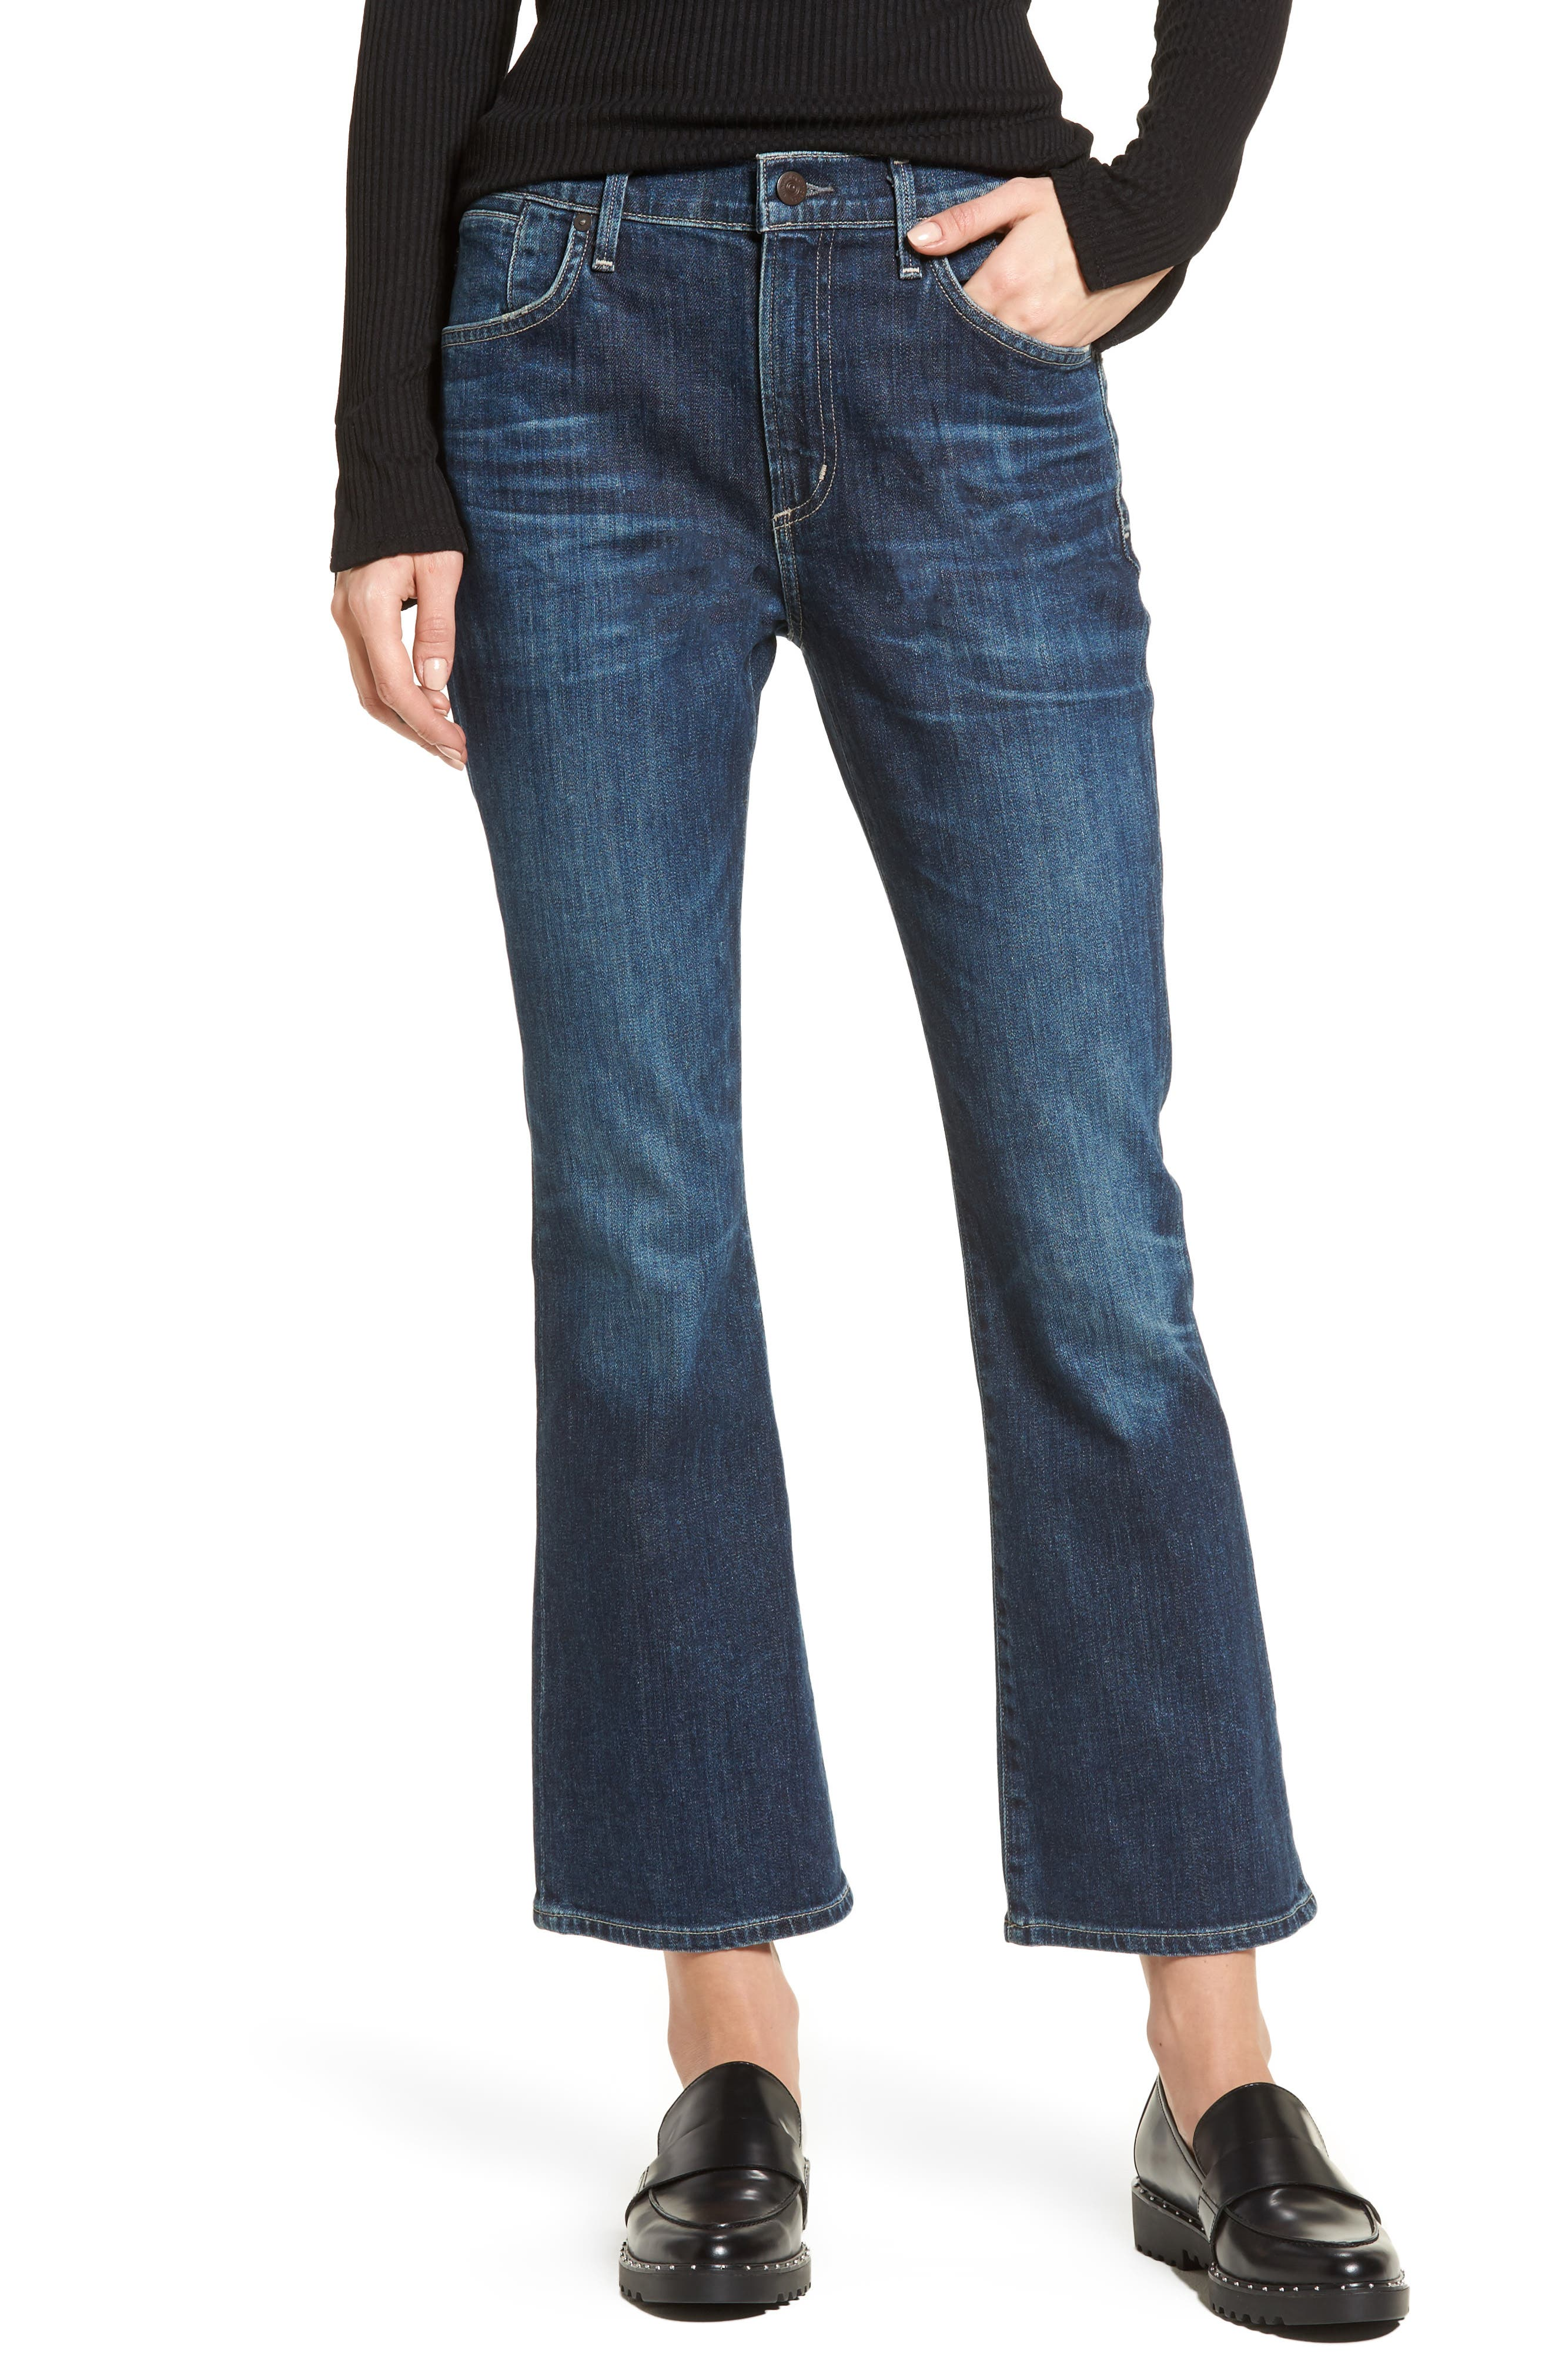 Alternate Image 1 Selected - Citizens of Humanity Fleetwood Crop Flare Jeans (Sonora)